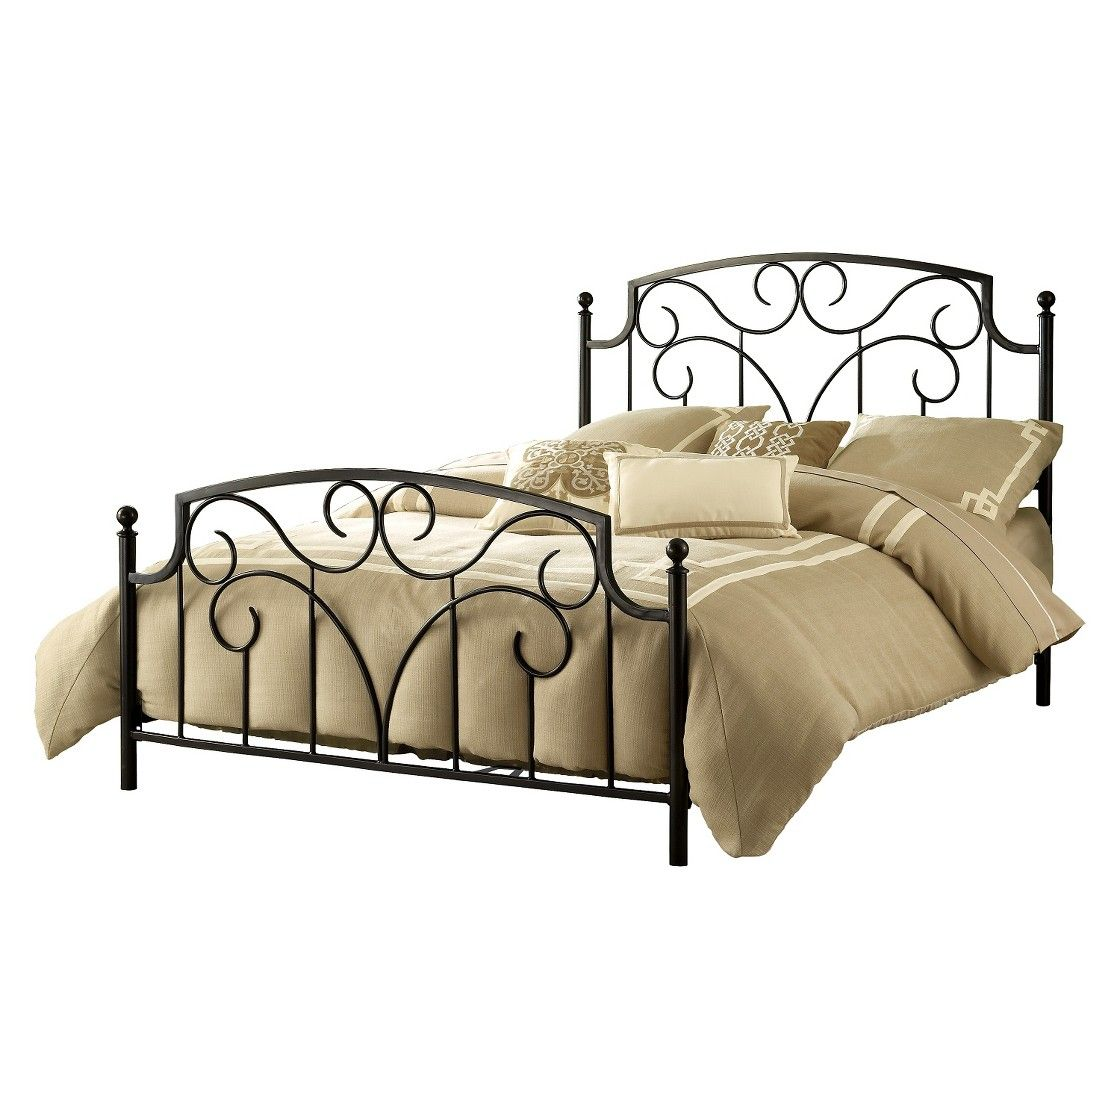 Hillsdale Cartwright Bed Set with Rails Beige (Queen